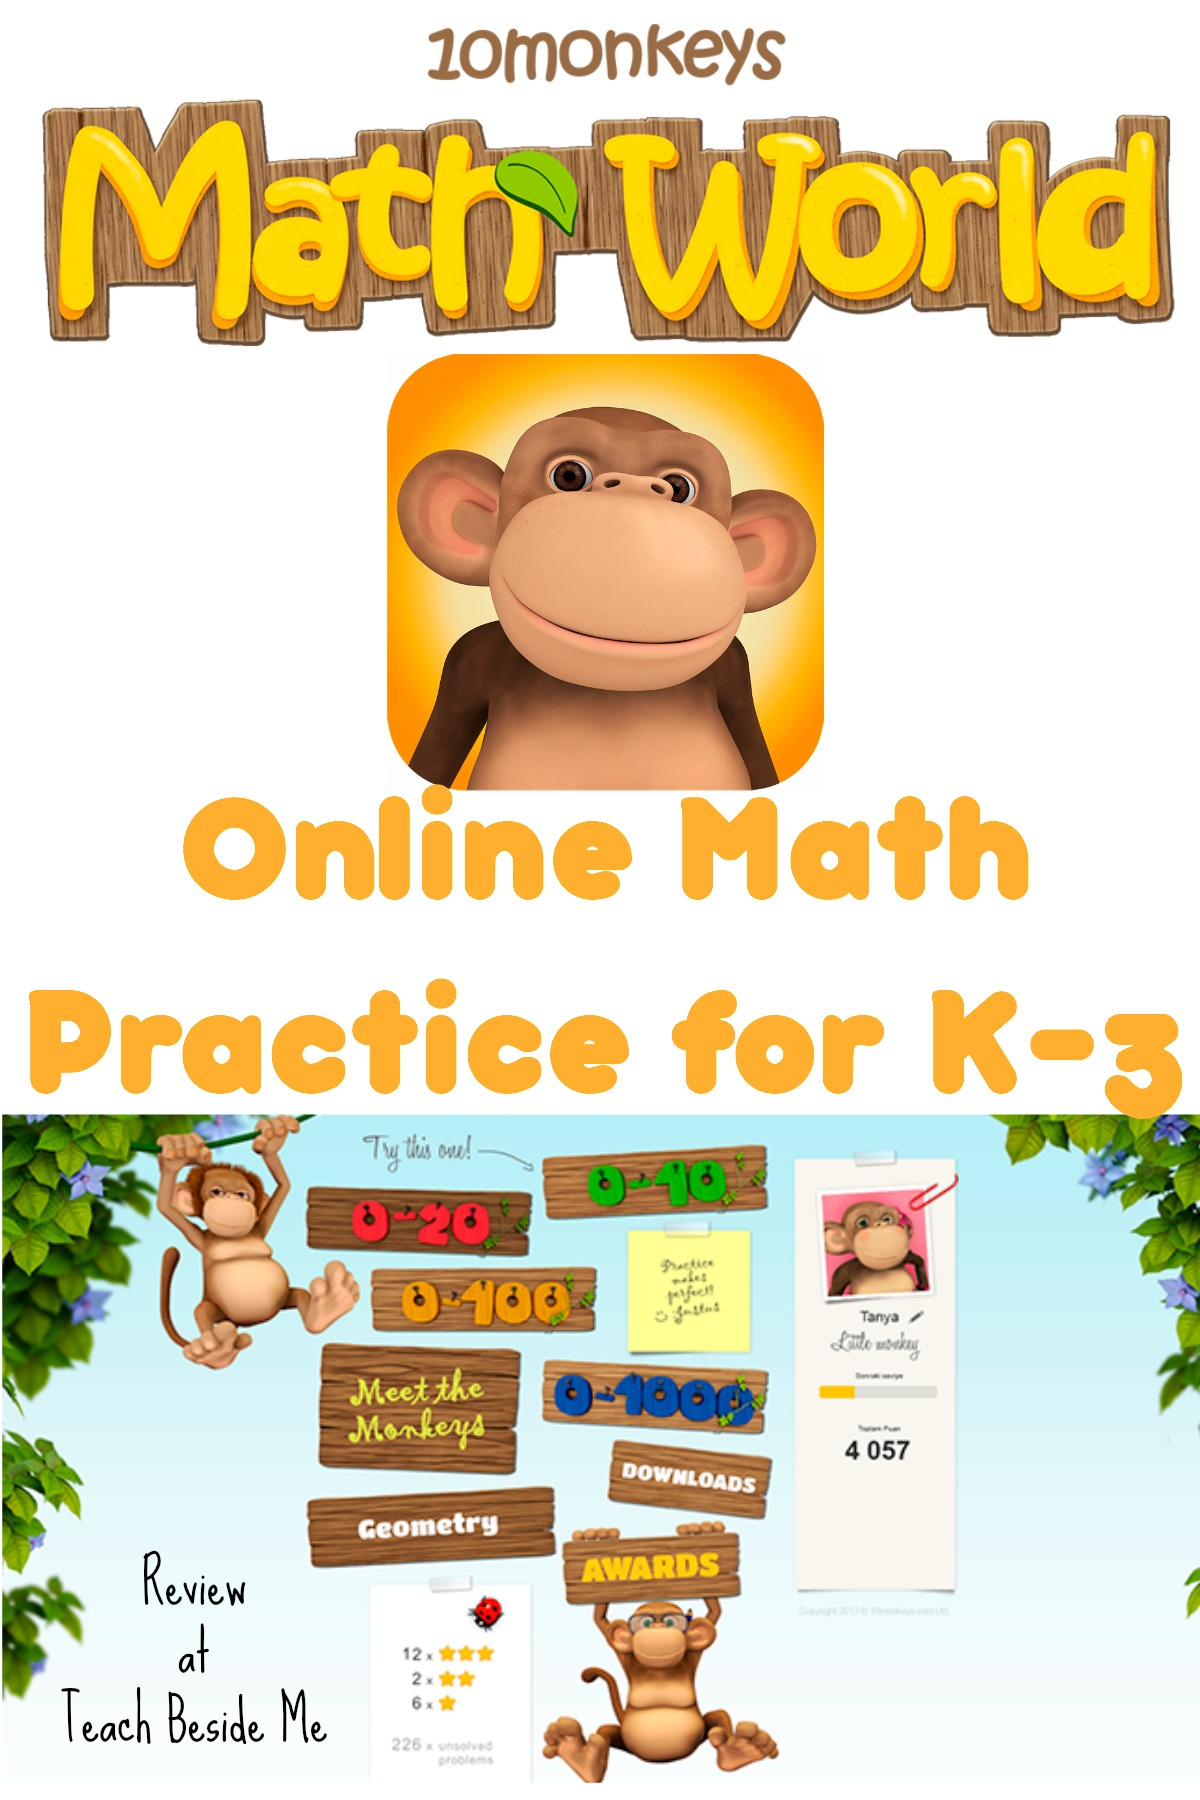 Online Math Practice with 10 Monkeys Math World - Teach Beside Me